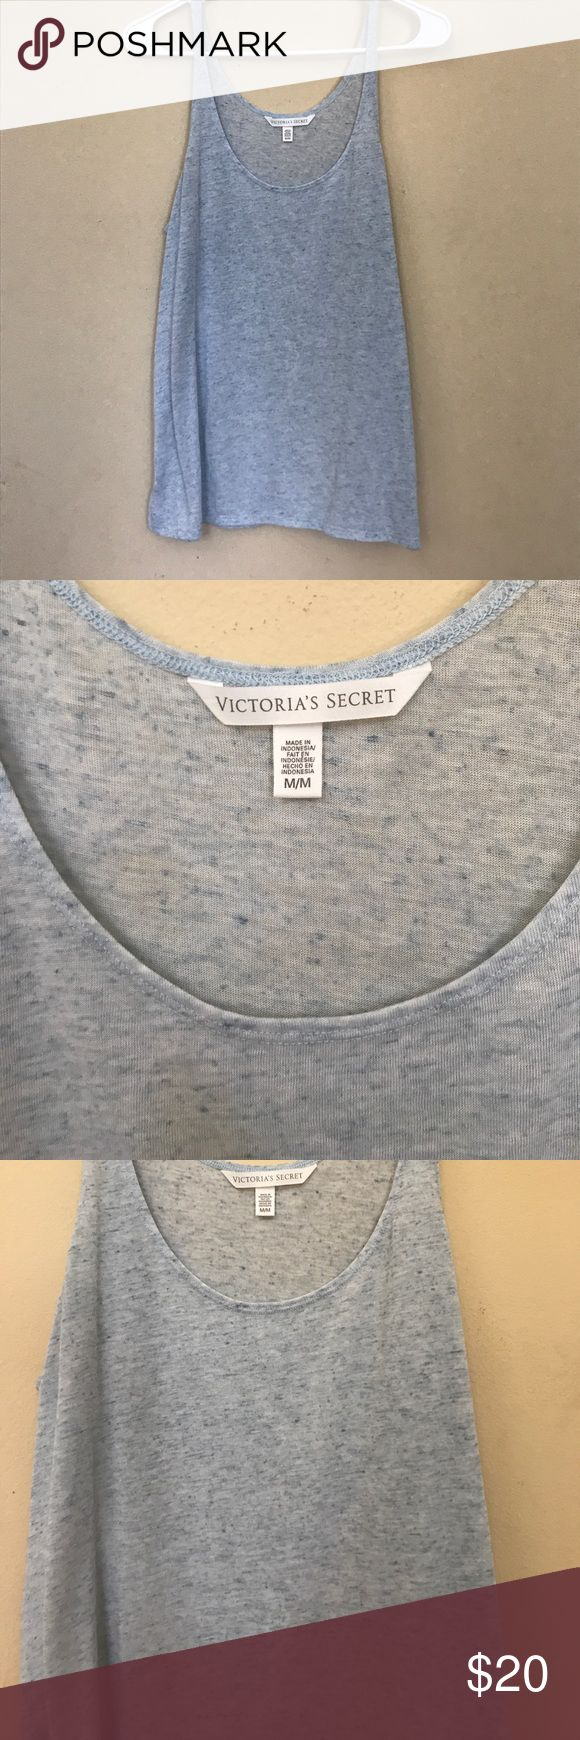 Heathered Victoria's Secret Sport Tank Top Light blue heathered VS Sport by Victoria's Secret. Long scoop neck tank top perfect for yoga, barre, Pilates. Racer back style with a flowy bottom. Brand new without tags Victoria's Secret Tops Tank Tops